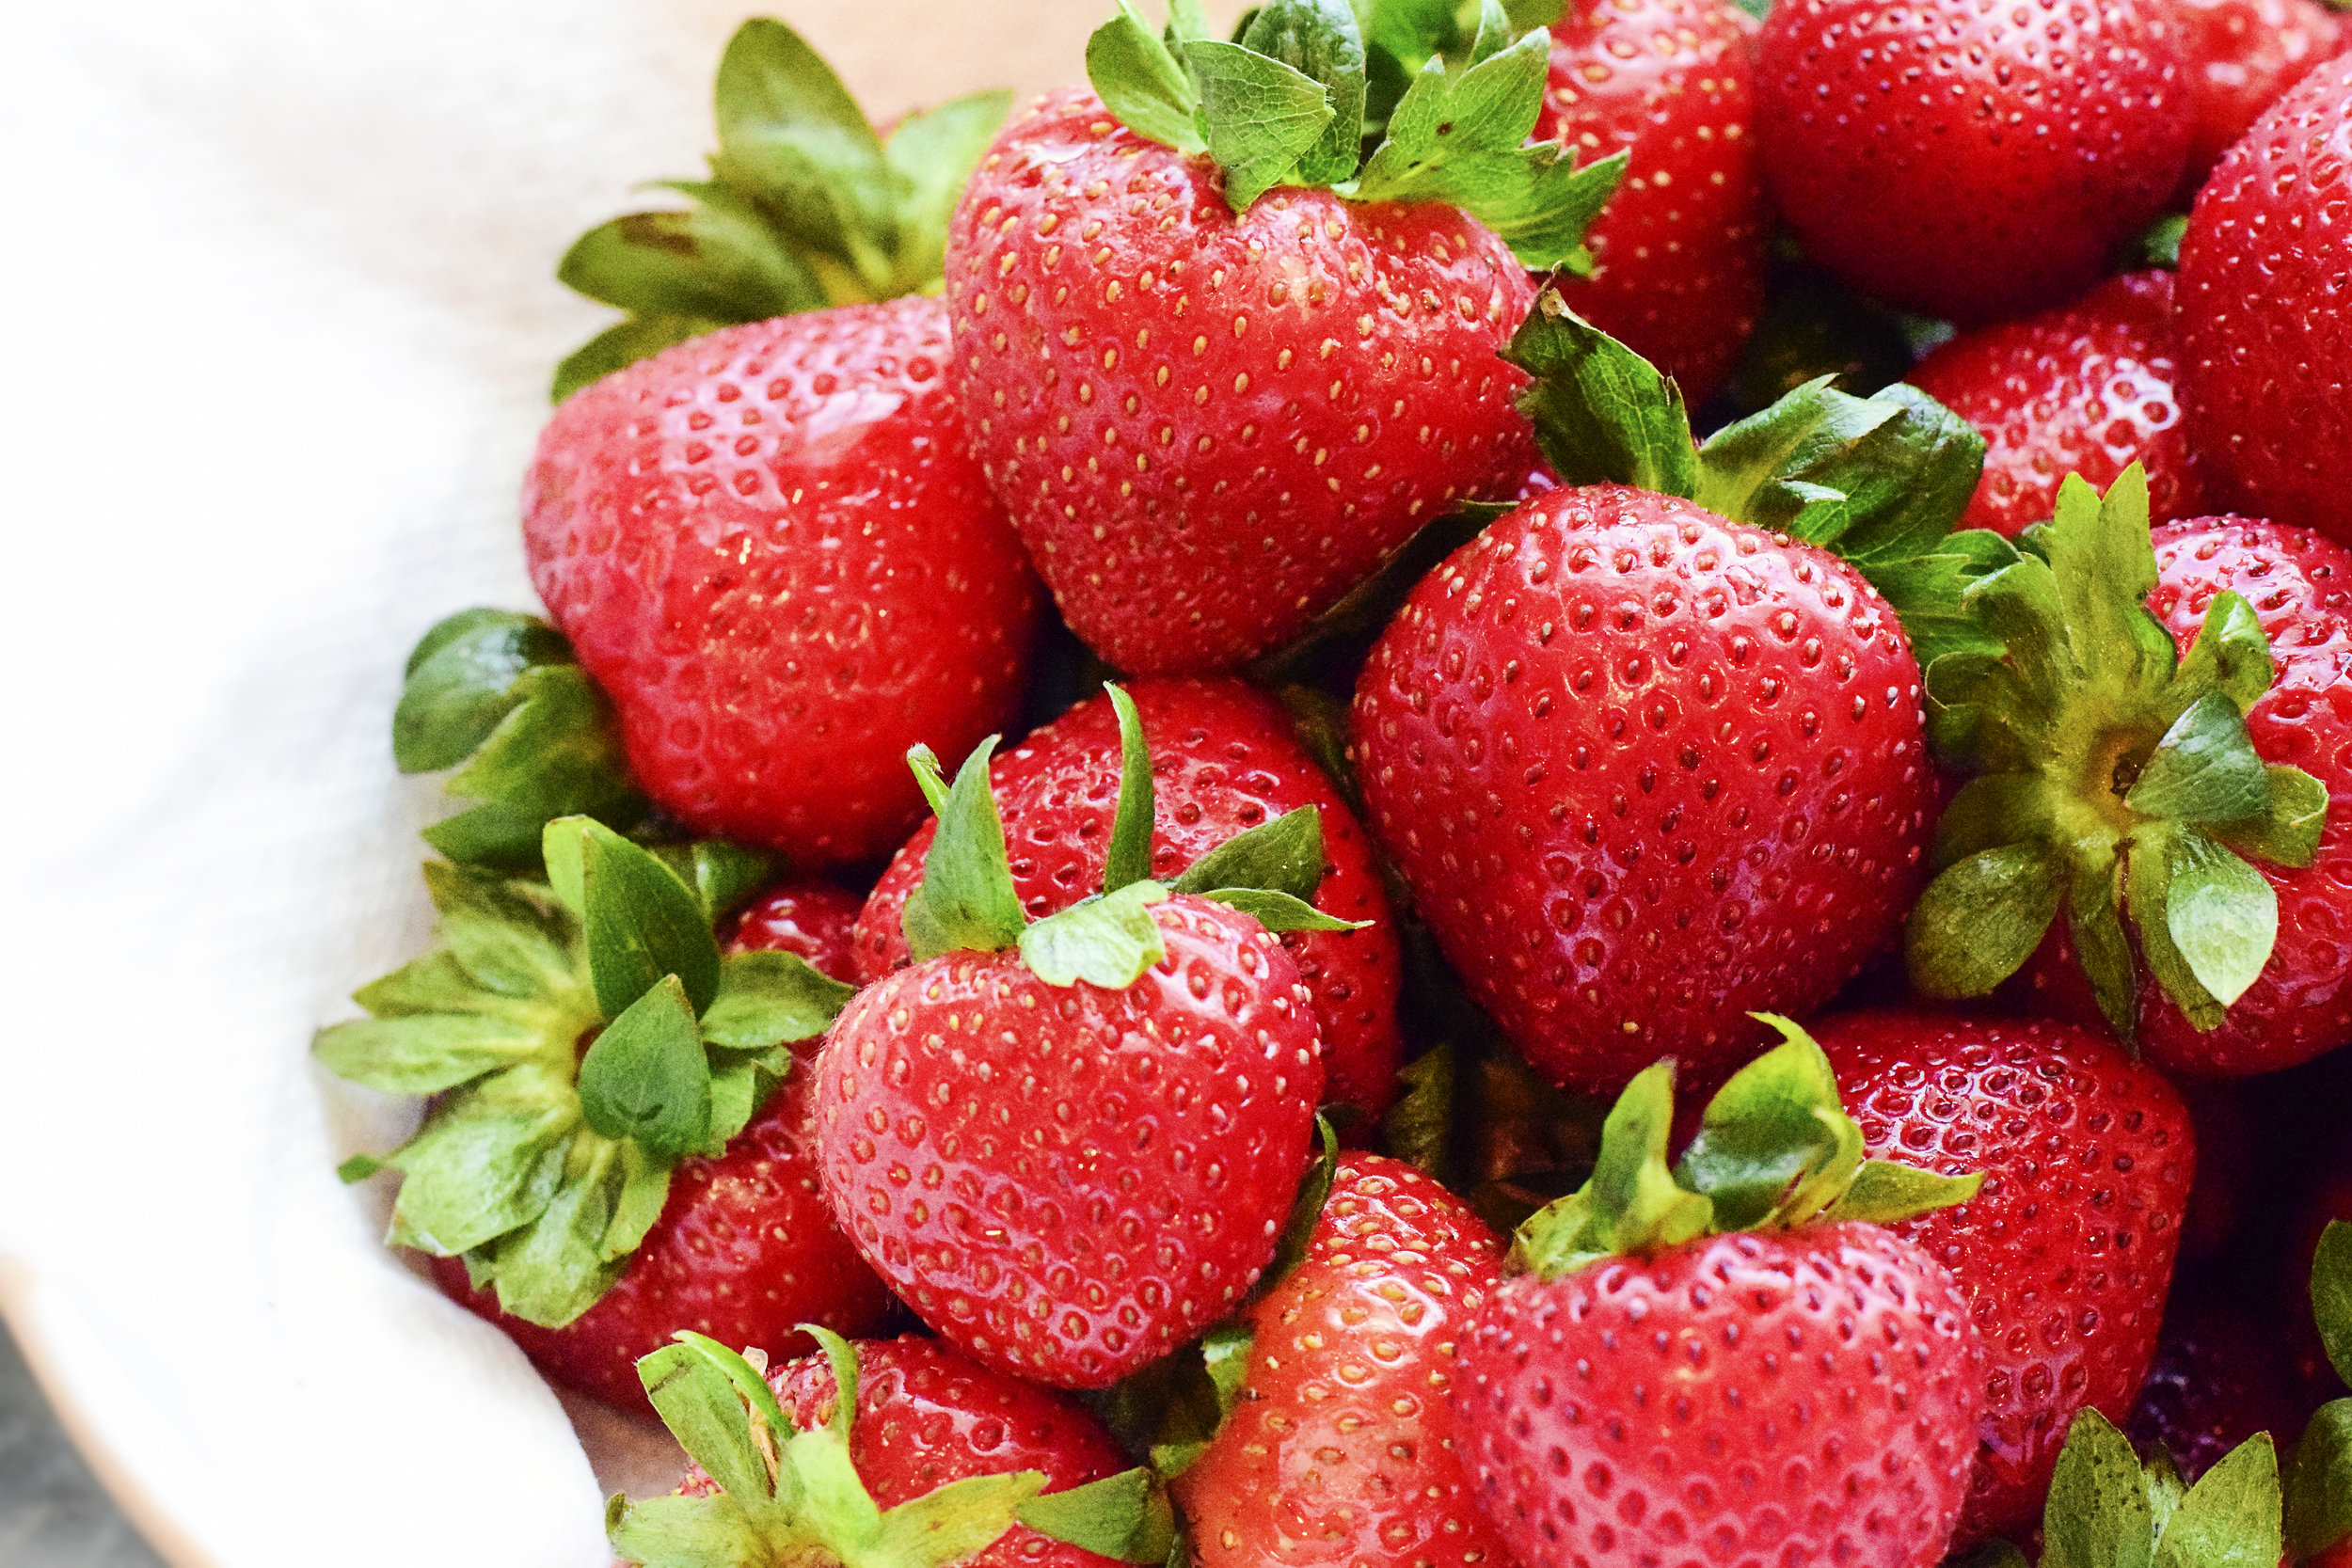 Strawberries are an excellent source of fiber, vitamin C, but are lower in potassium!